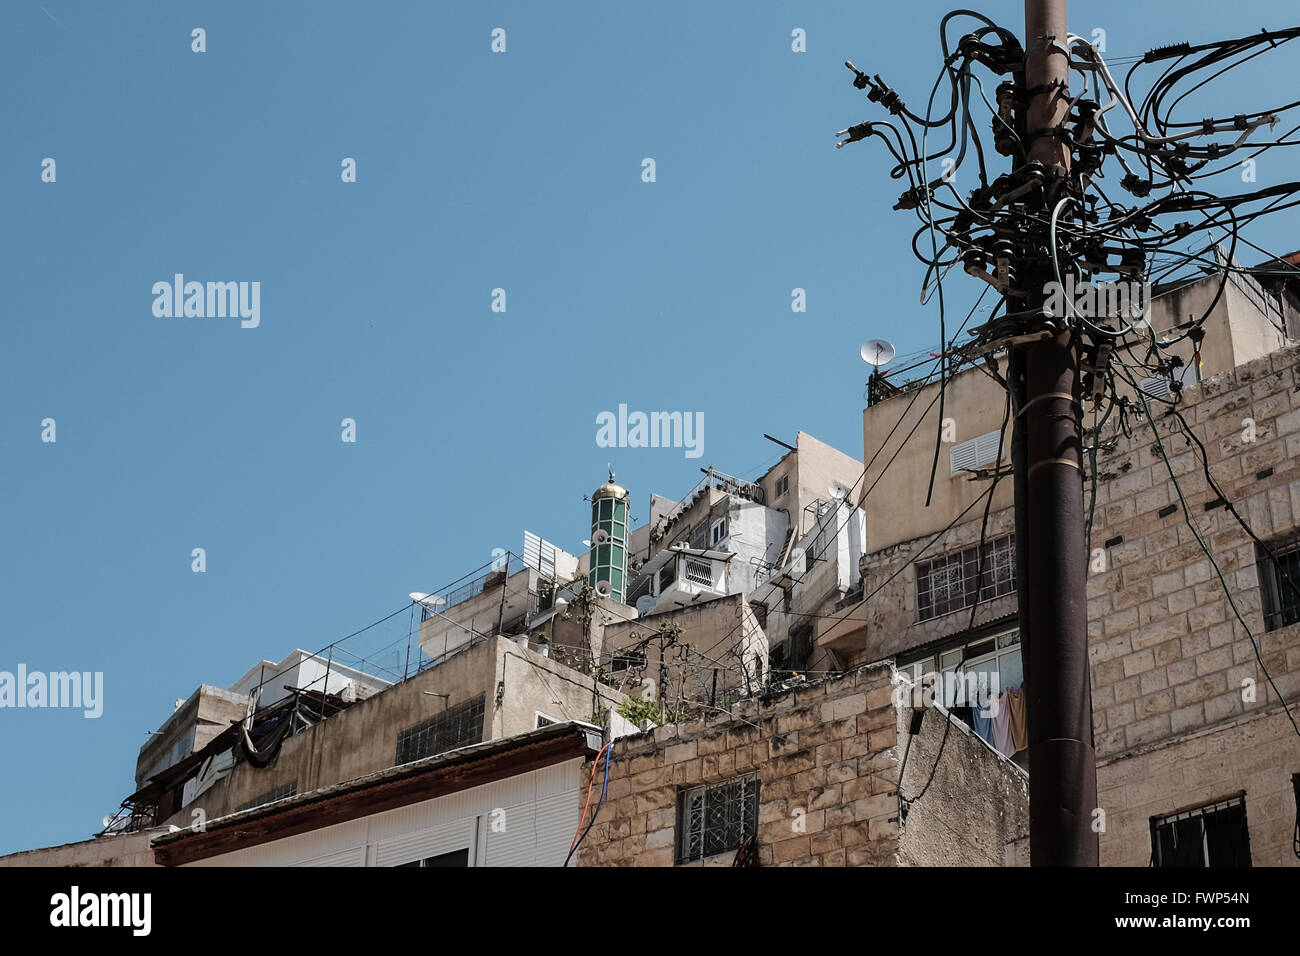 Jerusalem, Israel. 7th April, 2016. Rooftops and a mosque minaret in Silwan. An estimated 500 Israeli Jews currently - Stock Image